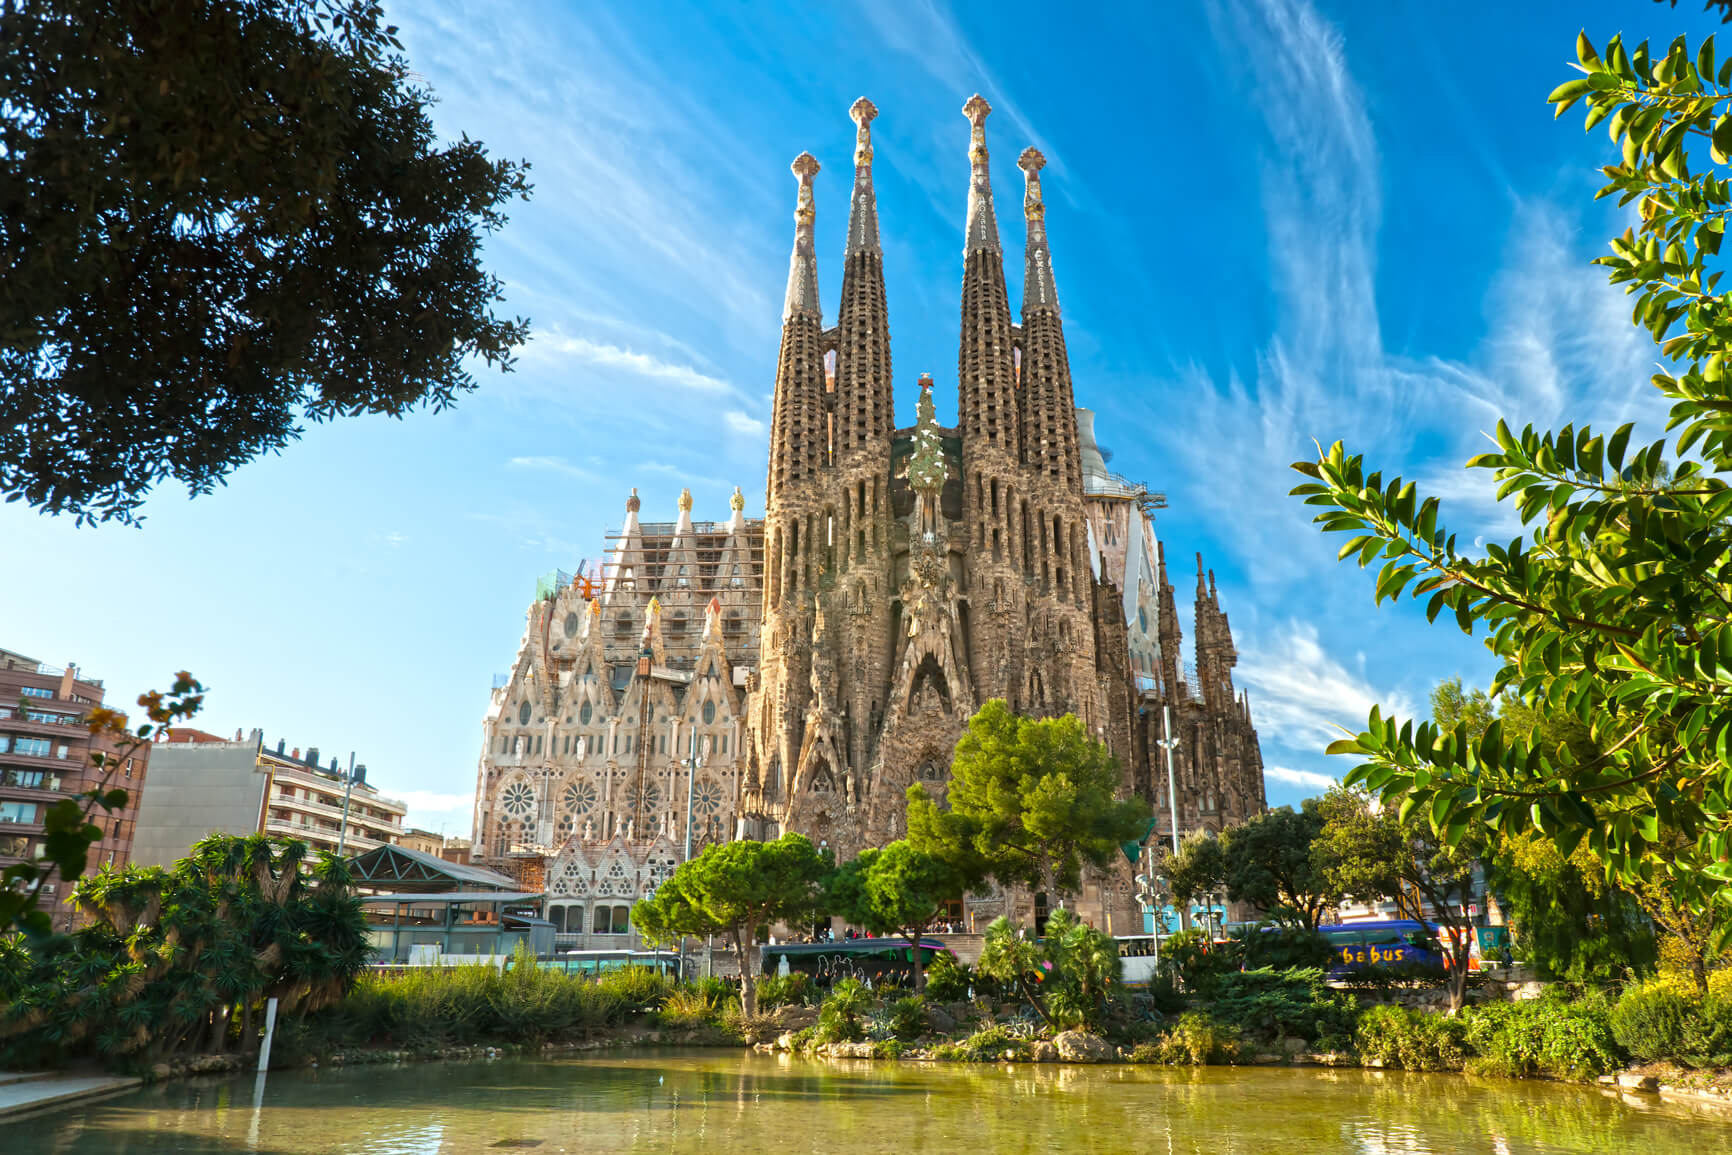 Oakland, California to Barcelona, Spain for only $338 roundtrip